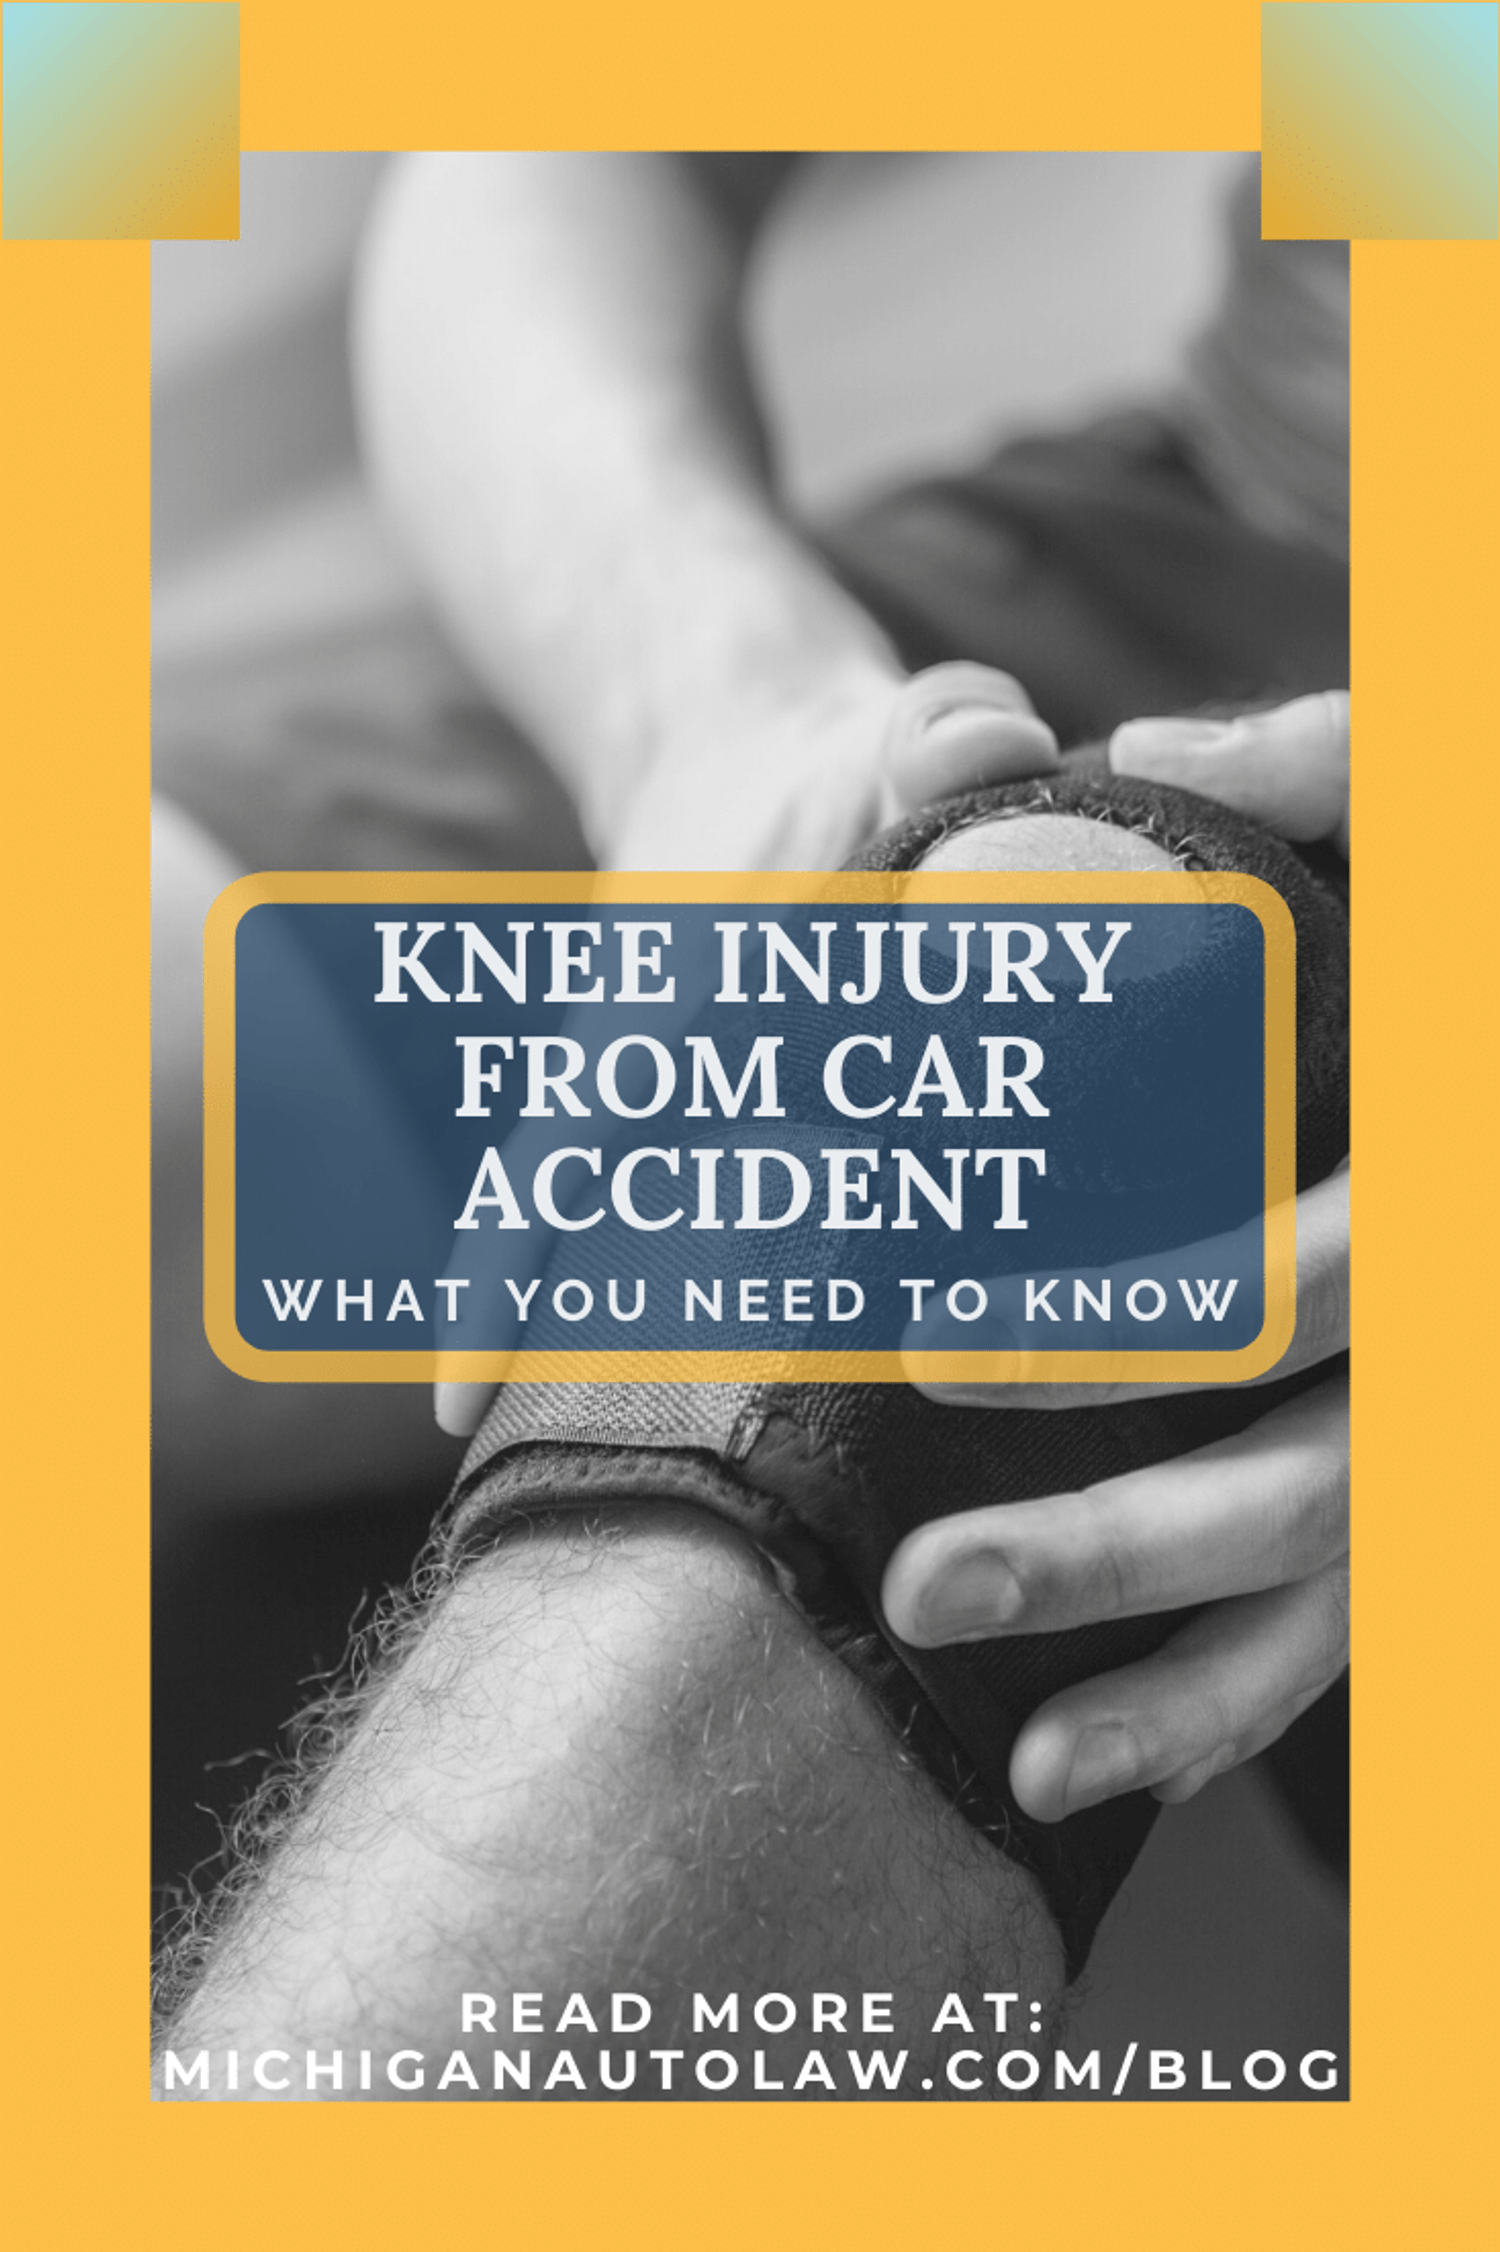 Knee Injury From Car Accident: What You Need To Know